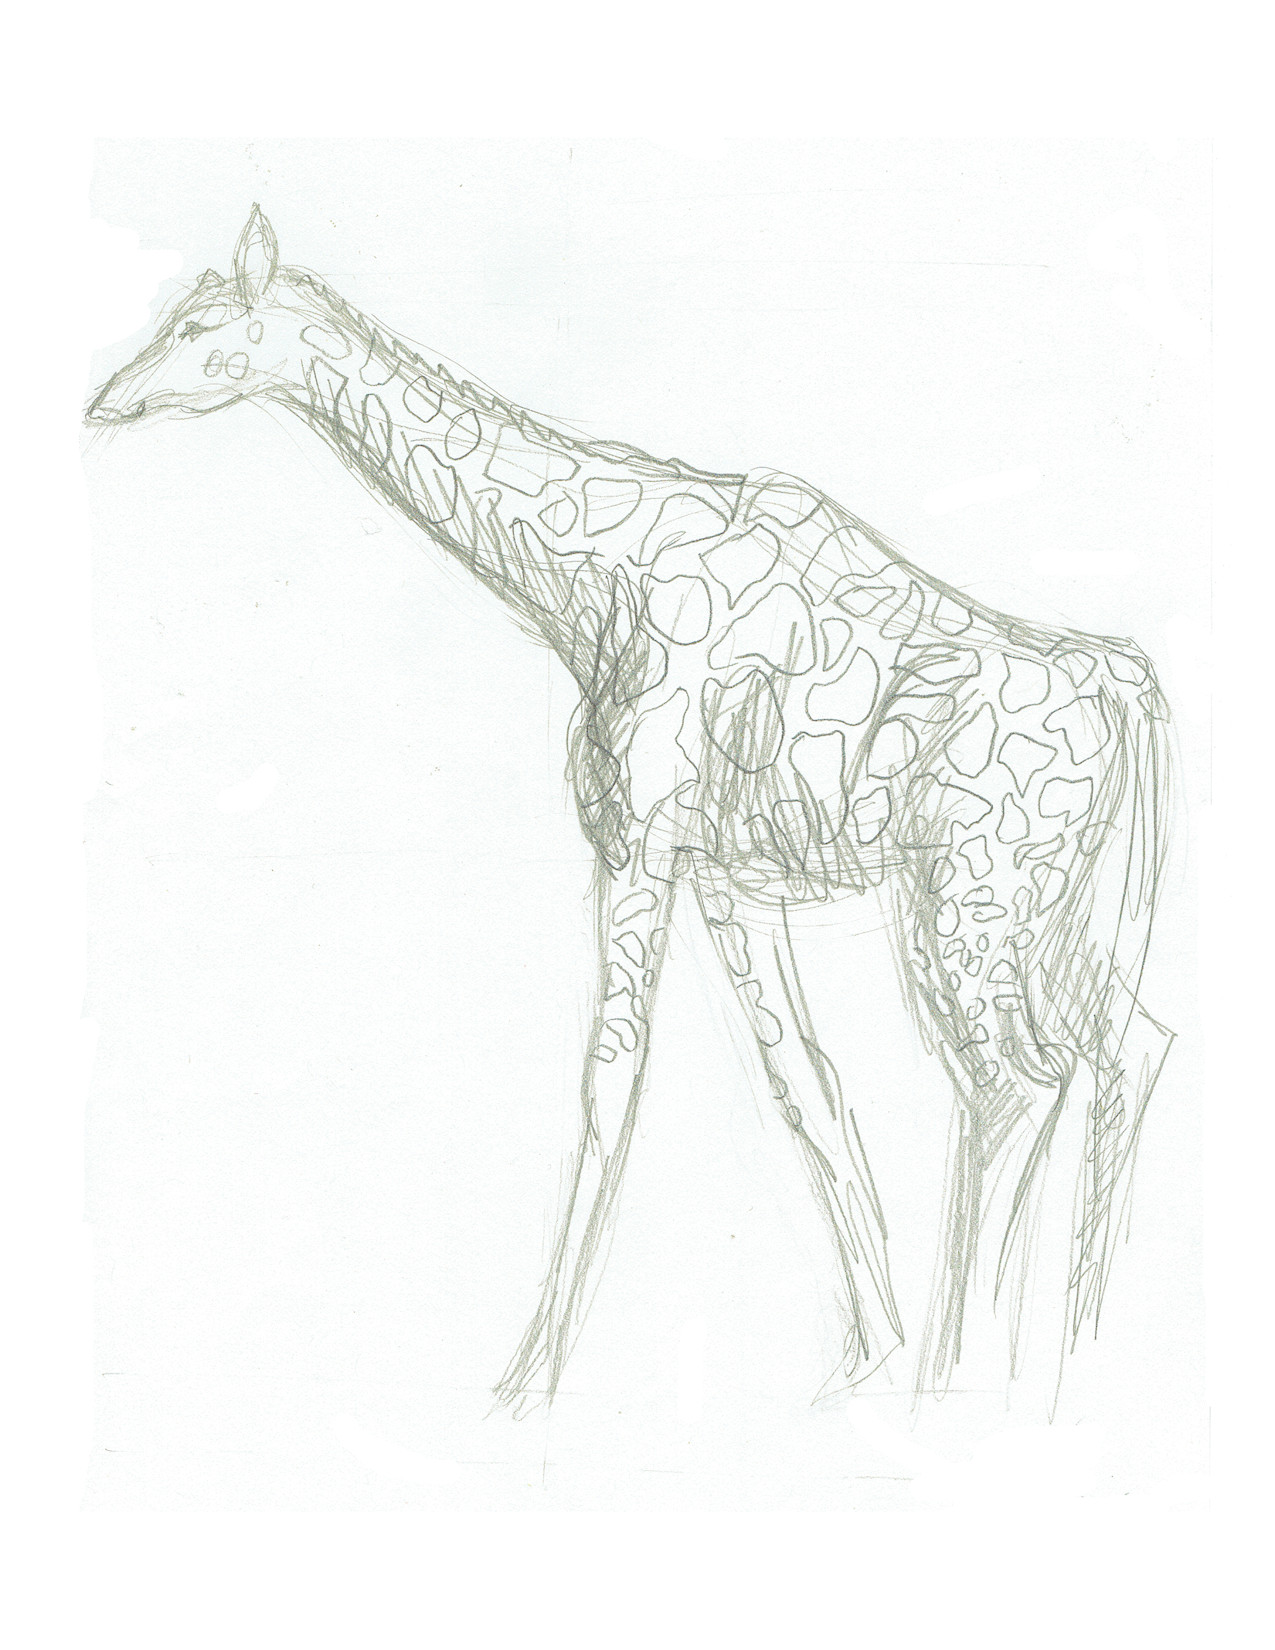 Surrounded zoo giraffe 2 loose pencil sketch of adult giraffe striding slowly around its zoo enclosure